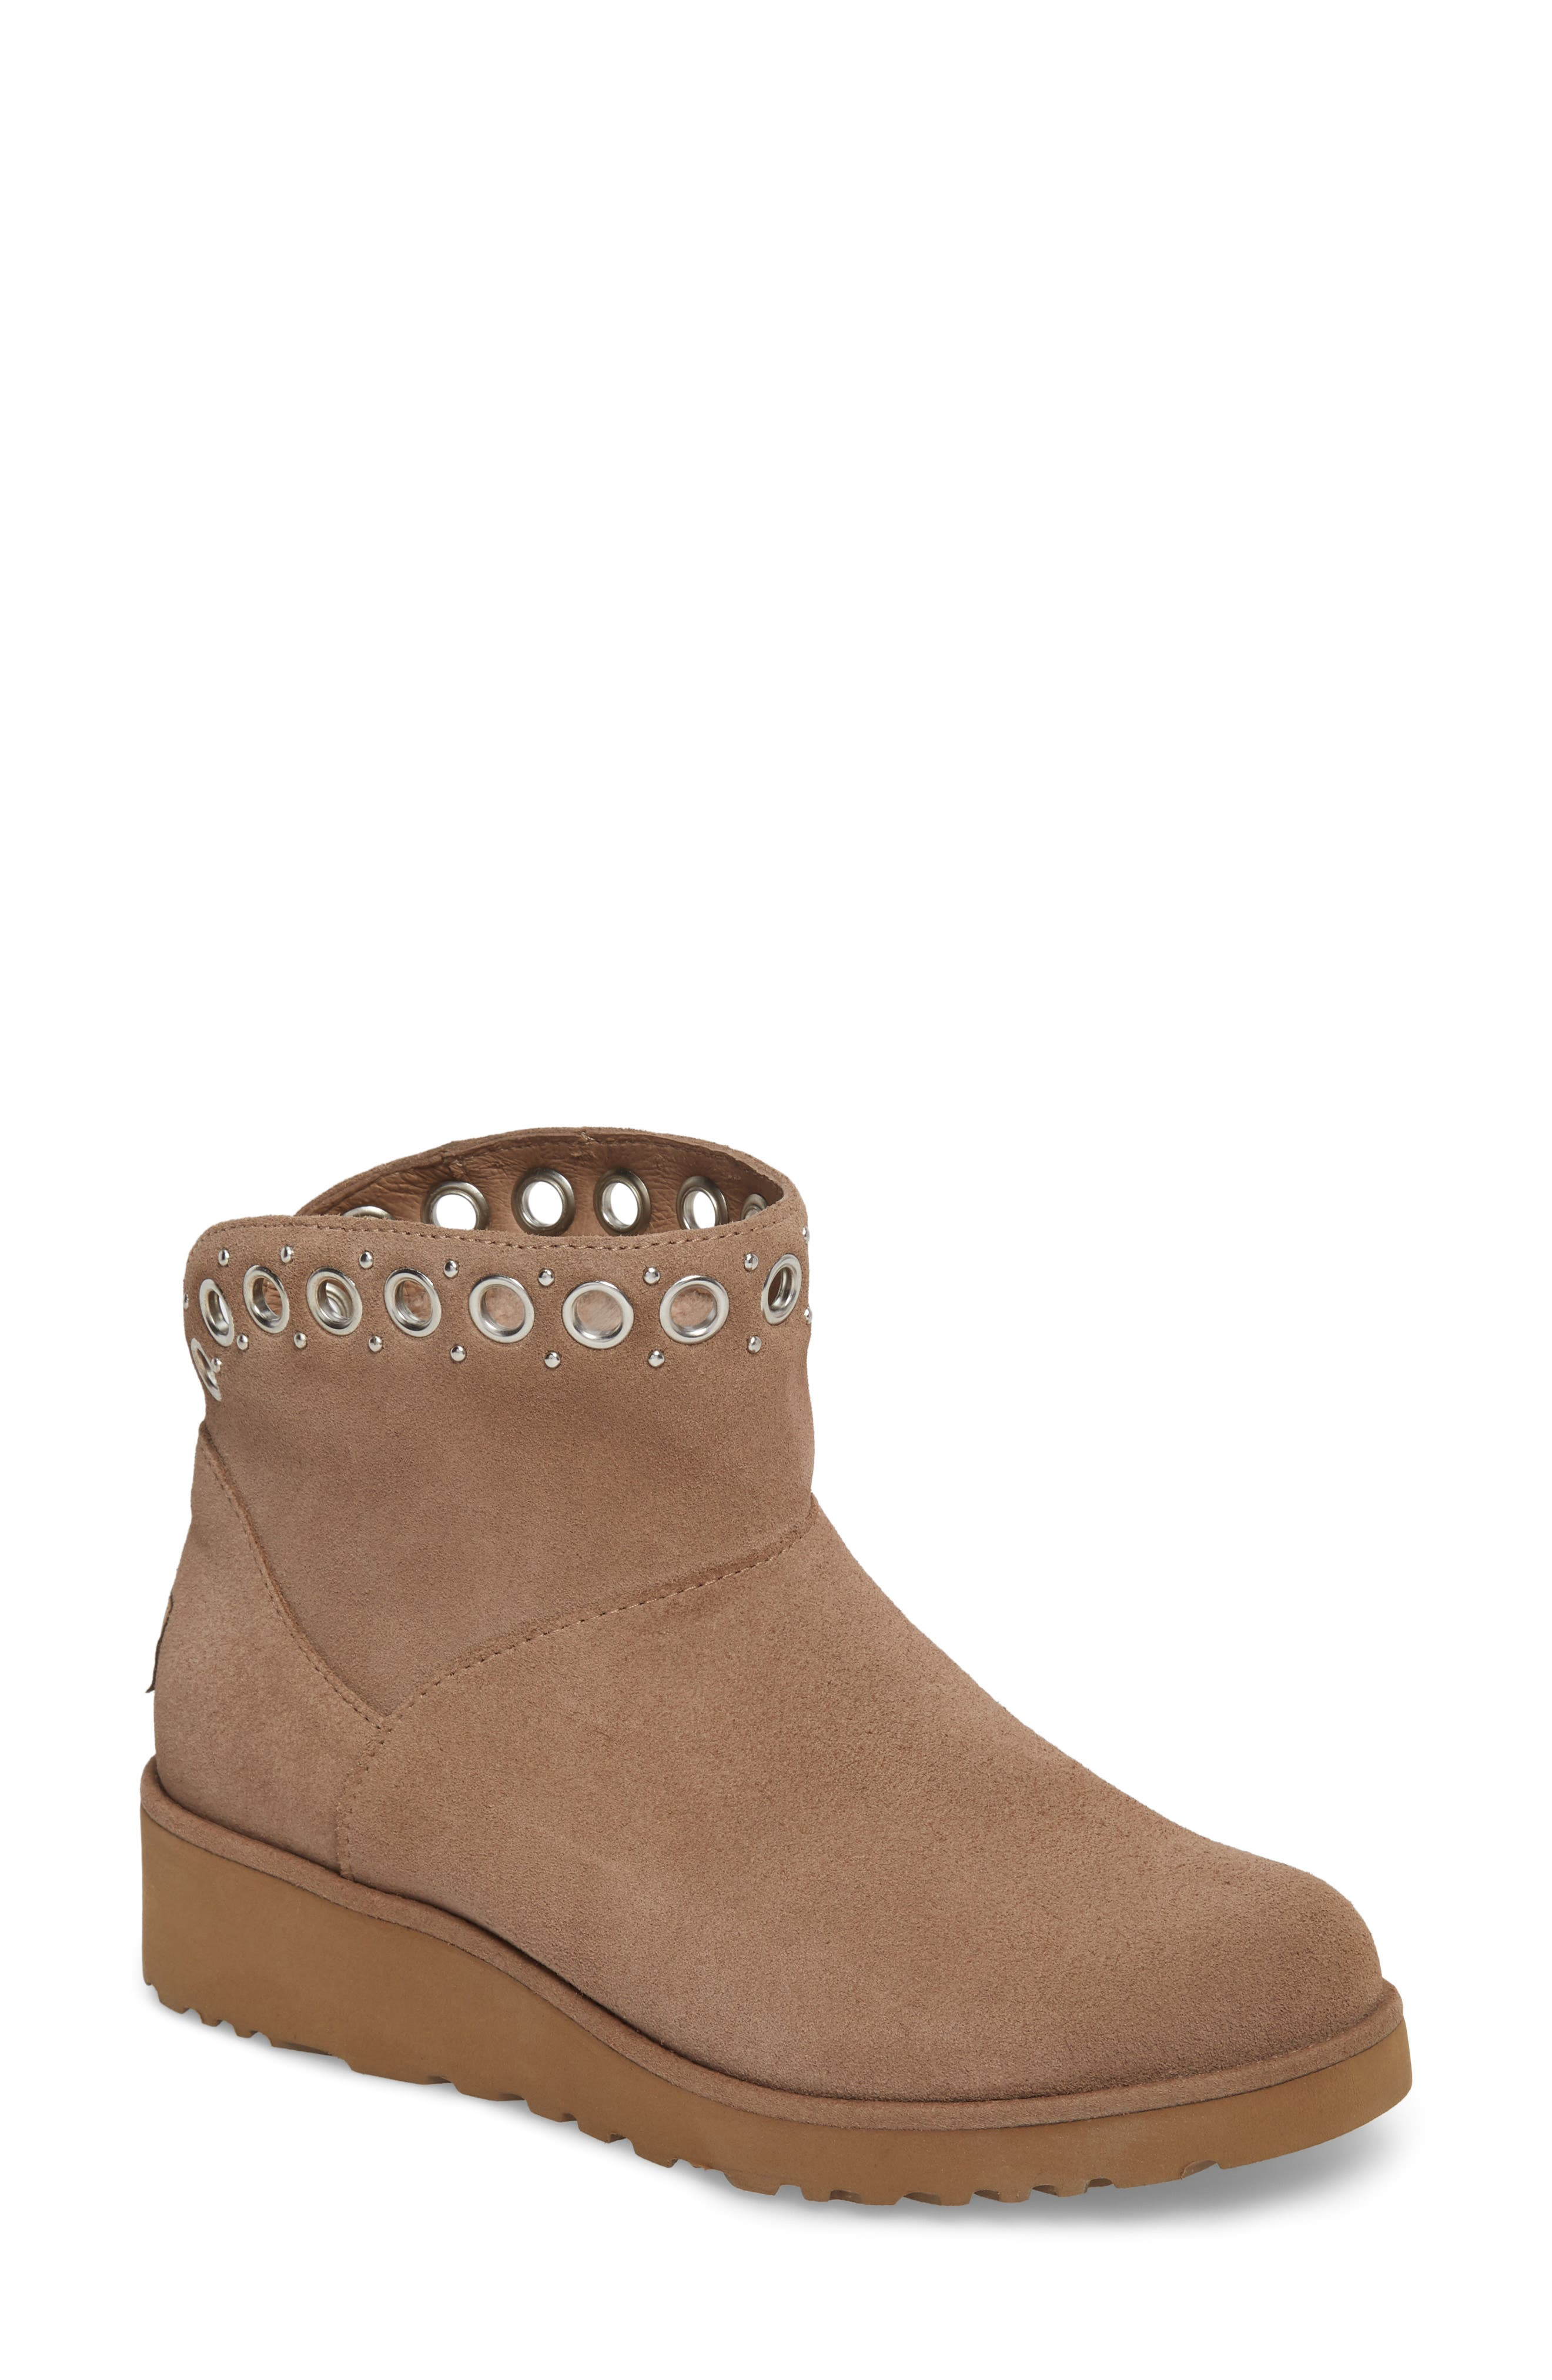 Riley Grommet Wedge Boot,                             Main thumbnail 1, color,                             Fawn Suede